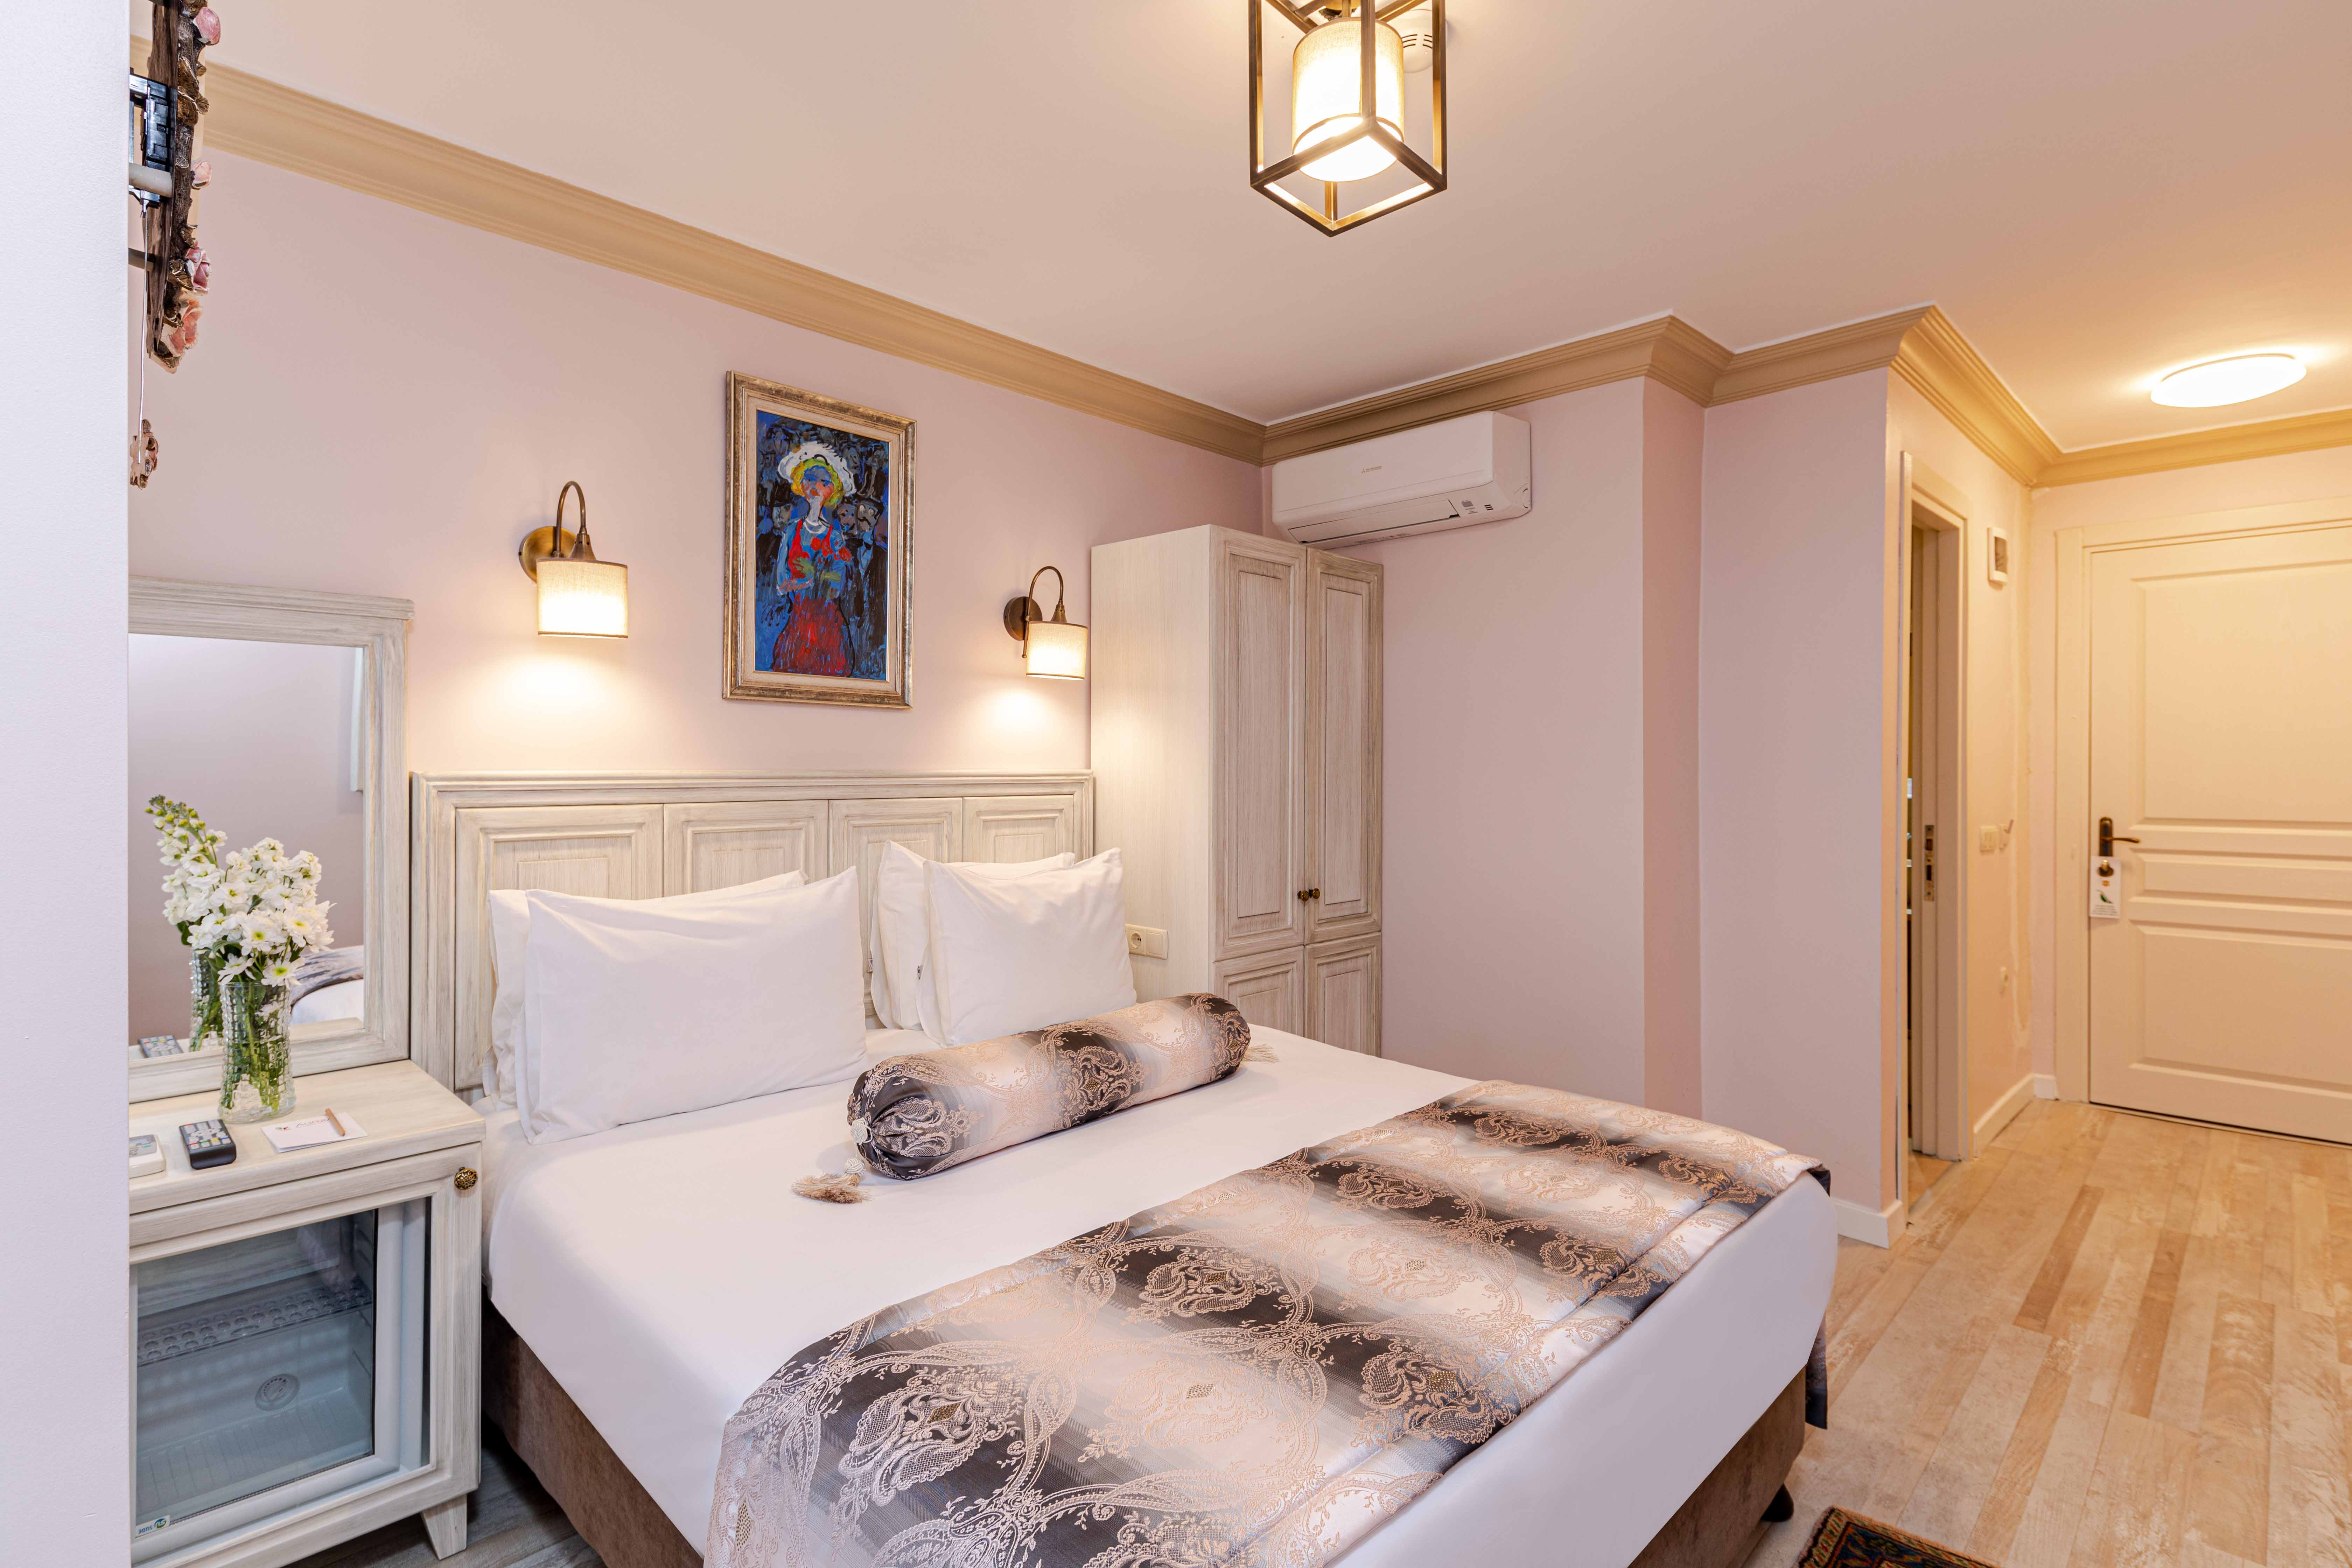 Agora Hostel and Guesthouse